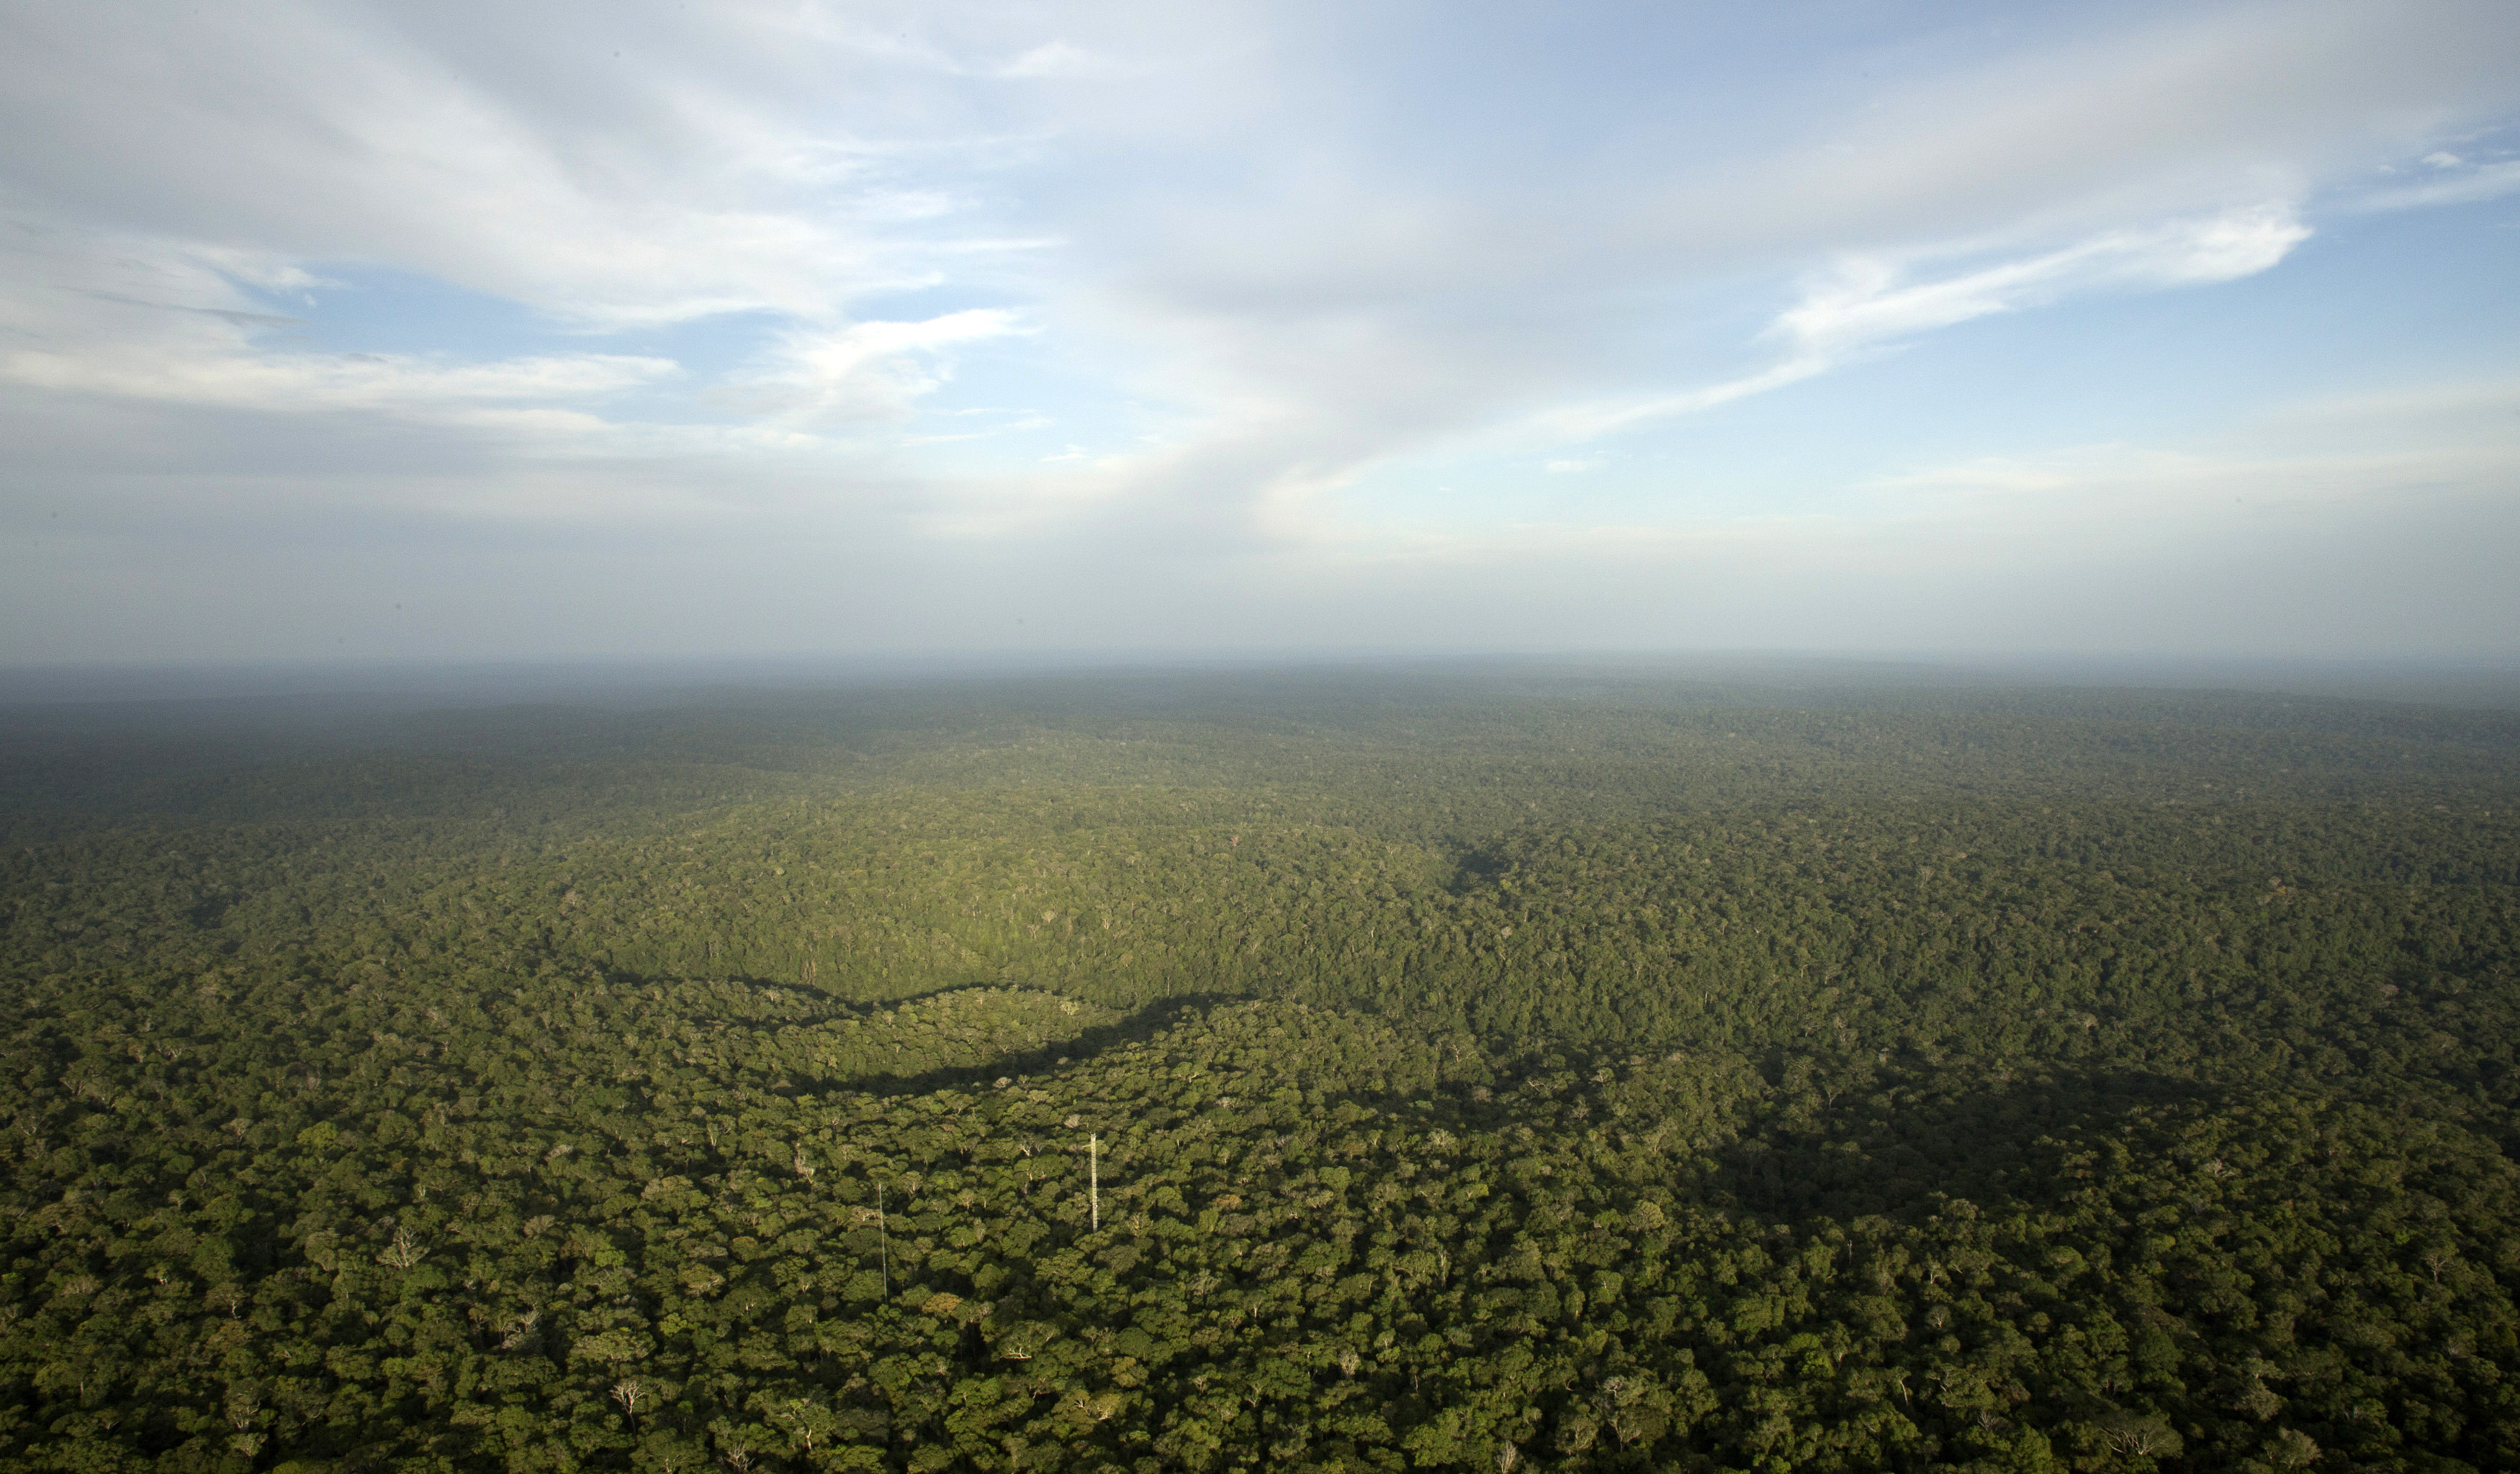 A view is seen from the Amazon Tall Tower Observatory in the middle of the Amazon forest